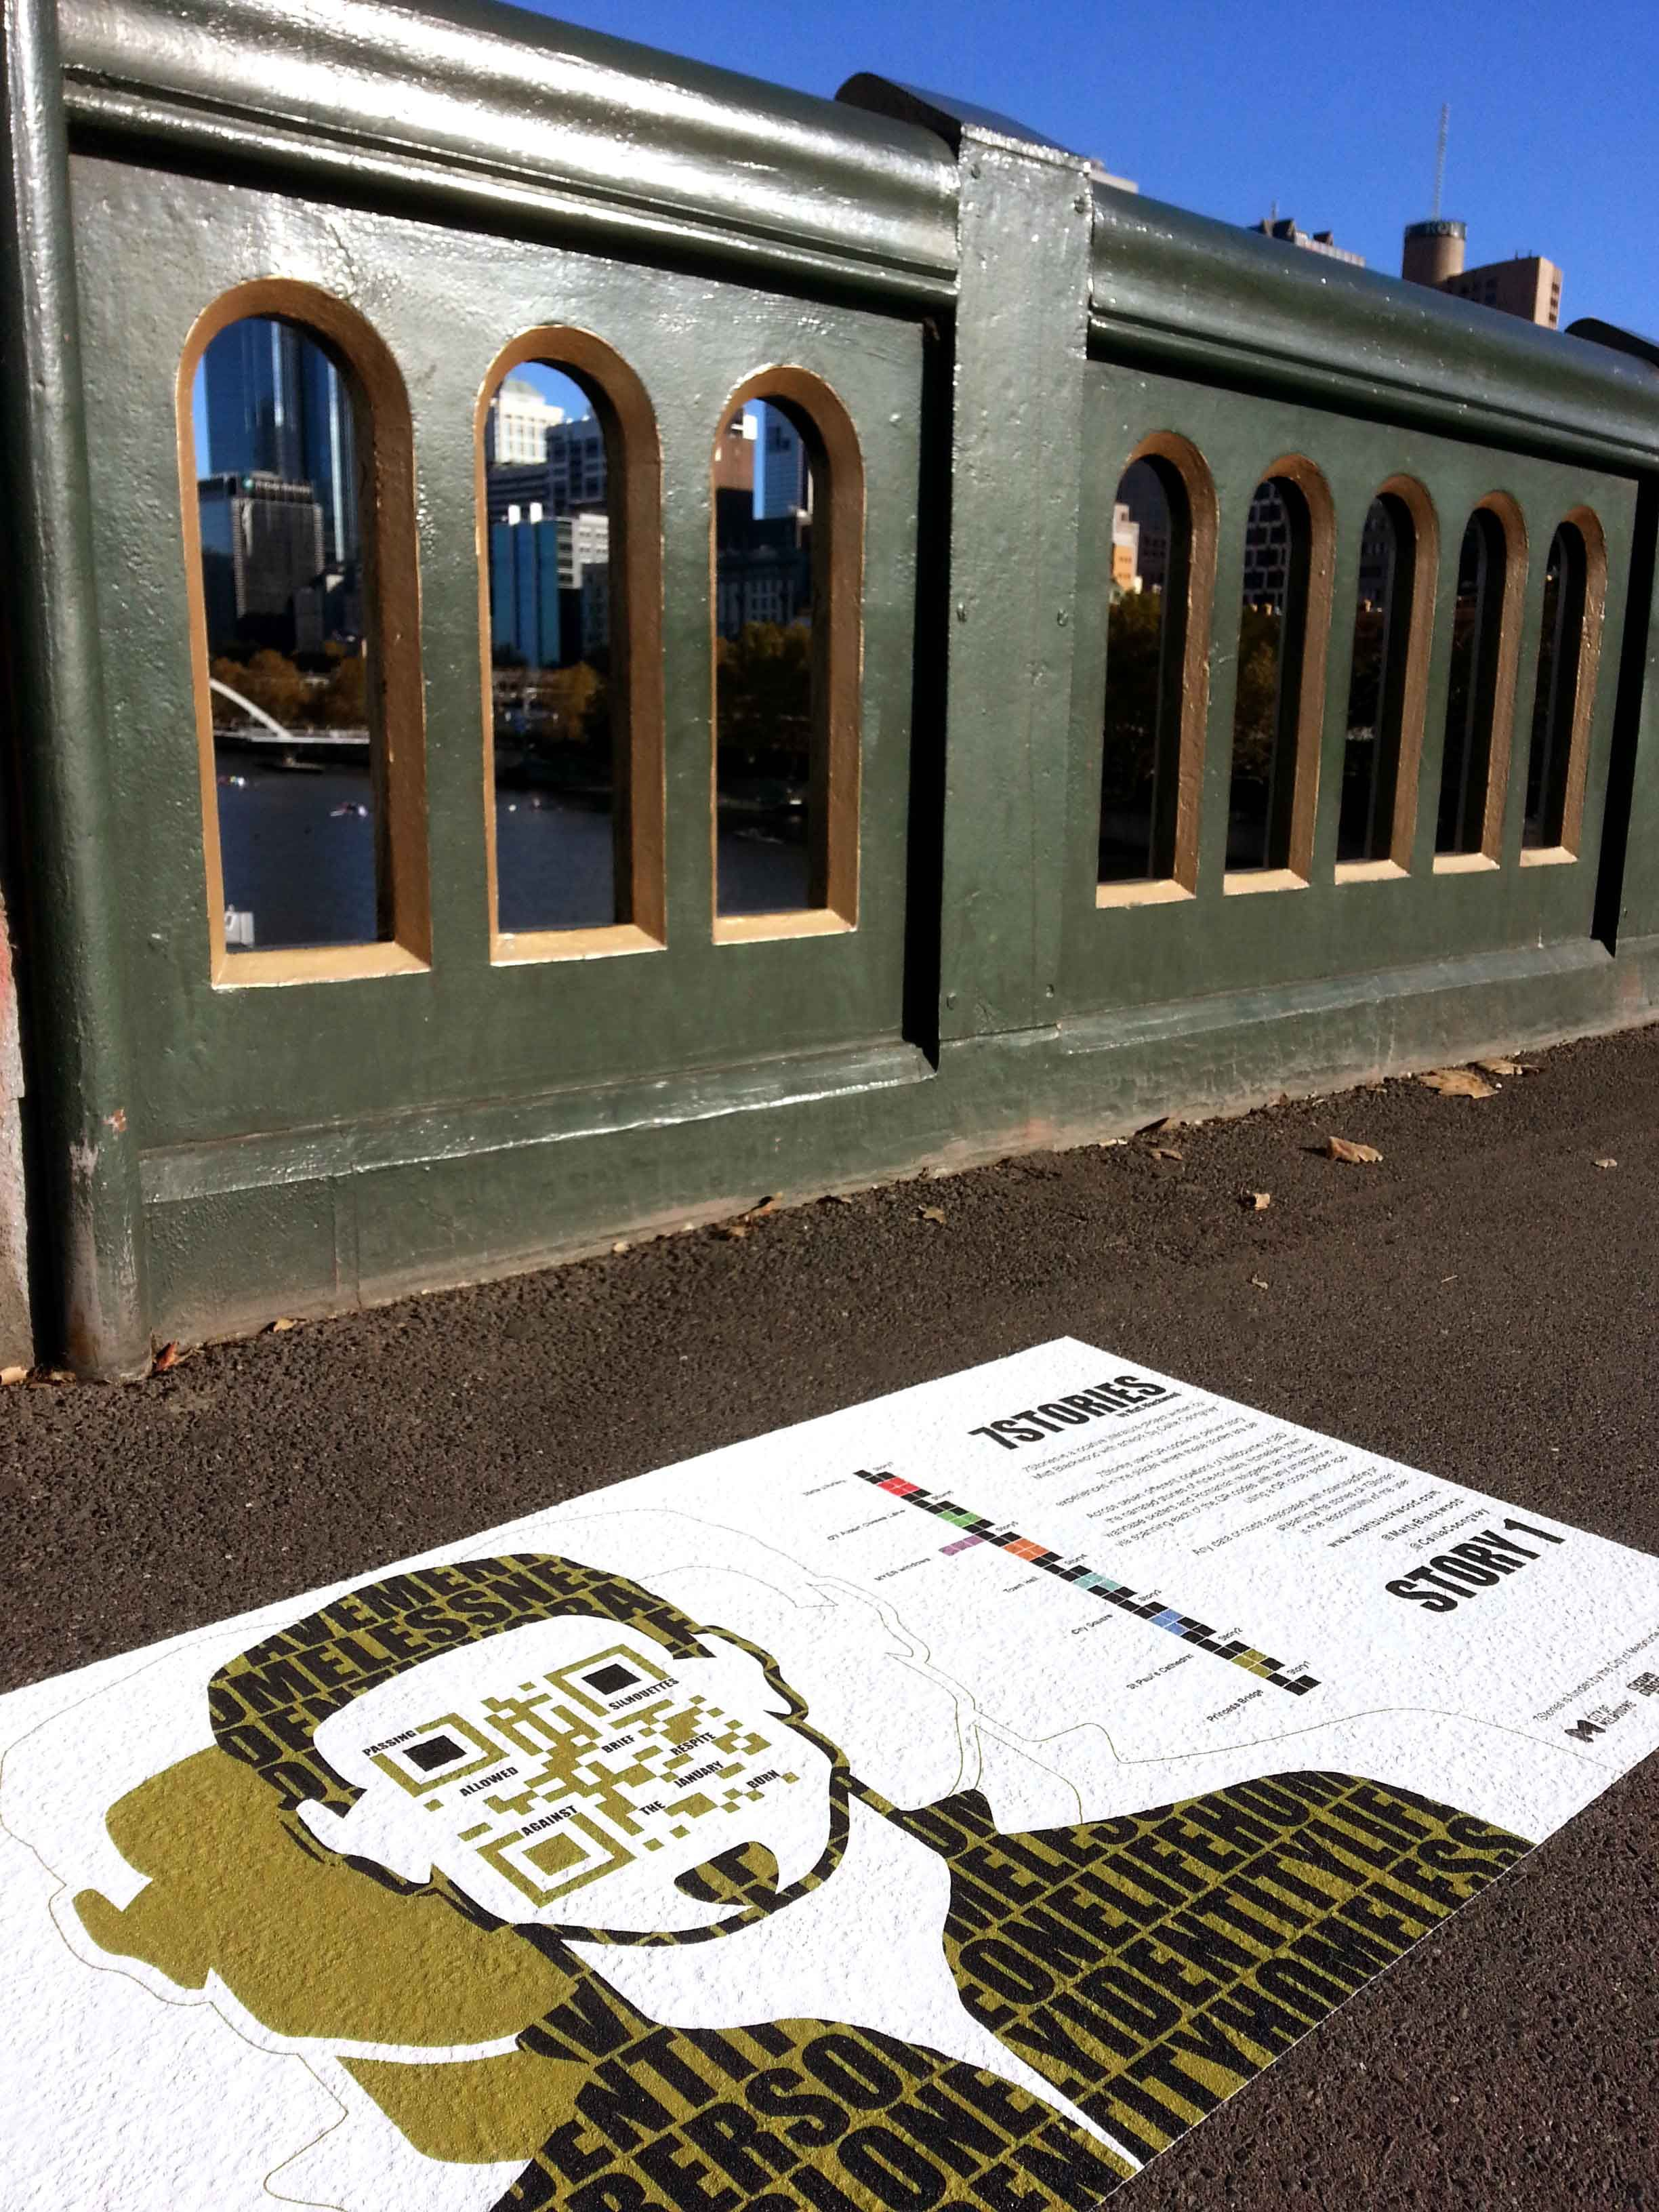 Matt Blackwood's series of QR codes in Melbourne called 7 Stories can be found printed on the paving slabs.